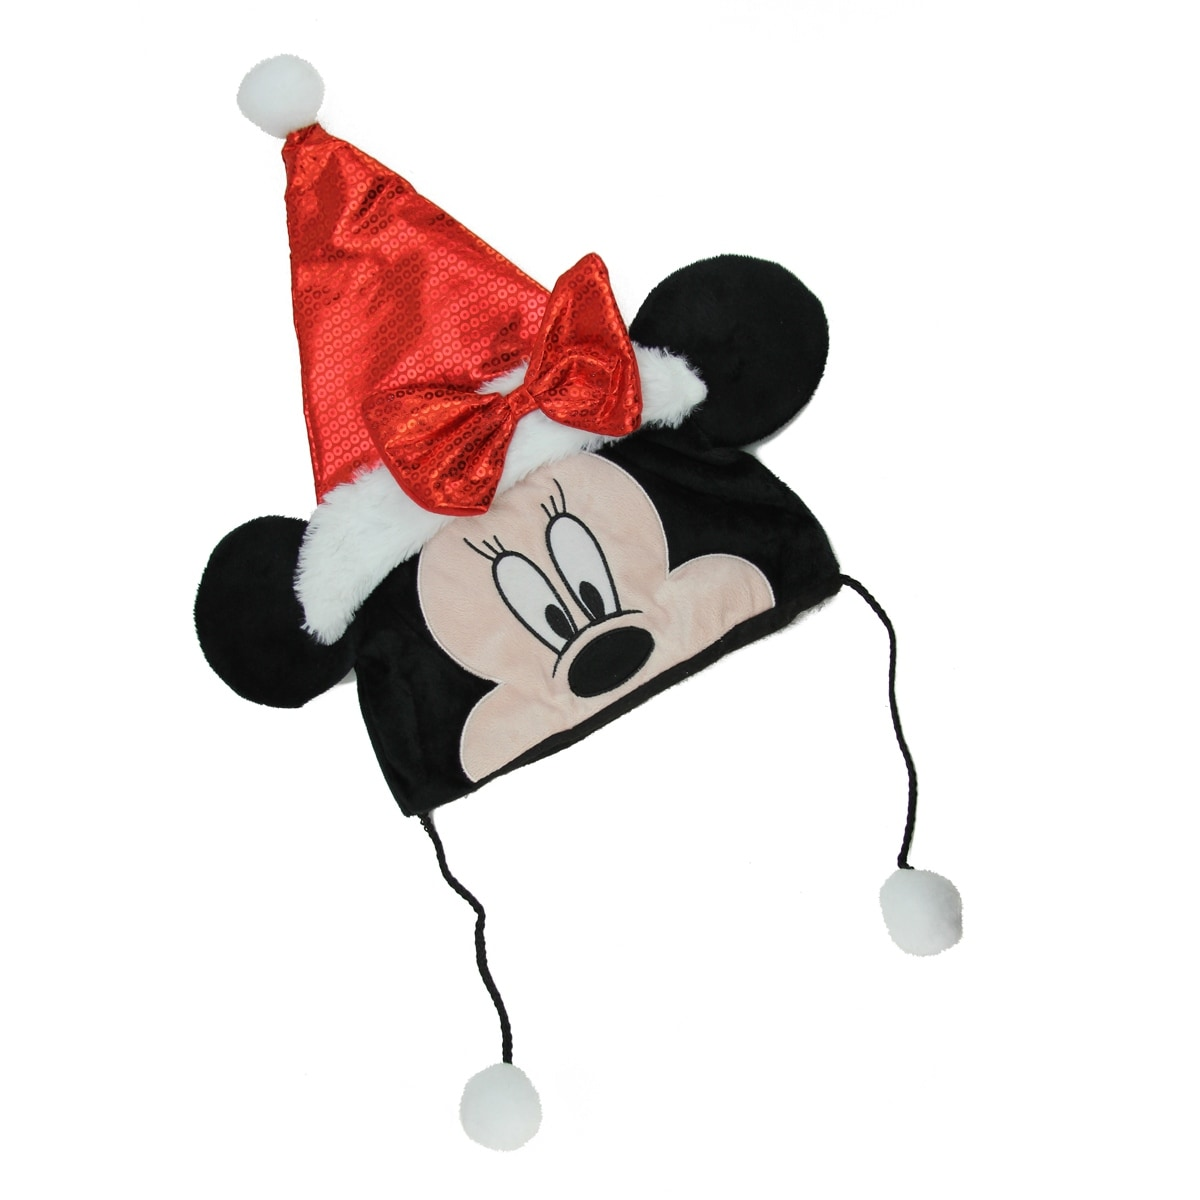 Christmas Minnie Mouse Head.16 Red And Black Disney Minnie Mouse Unisex Child Christmas Santa Claus Hat Costume Accessory Medium